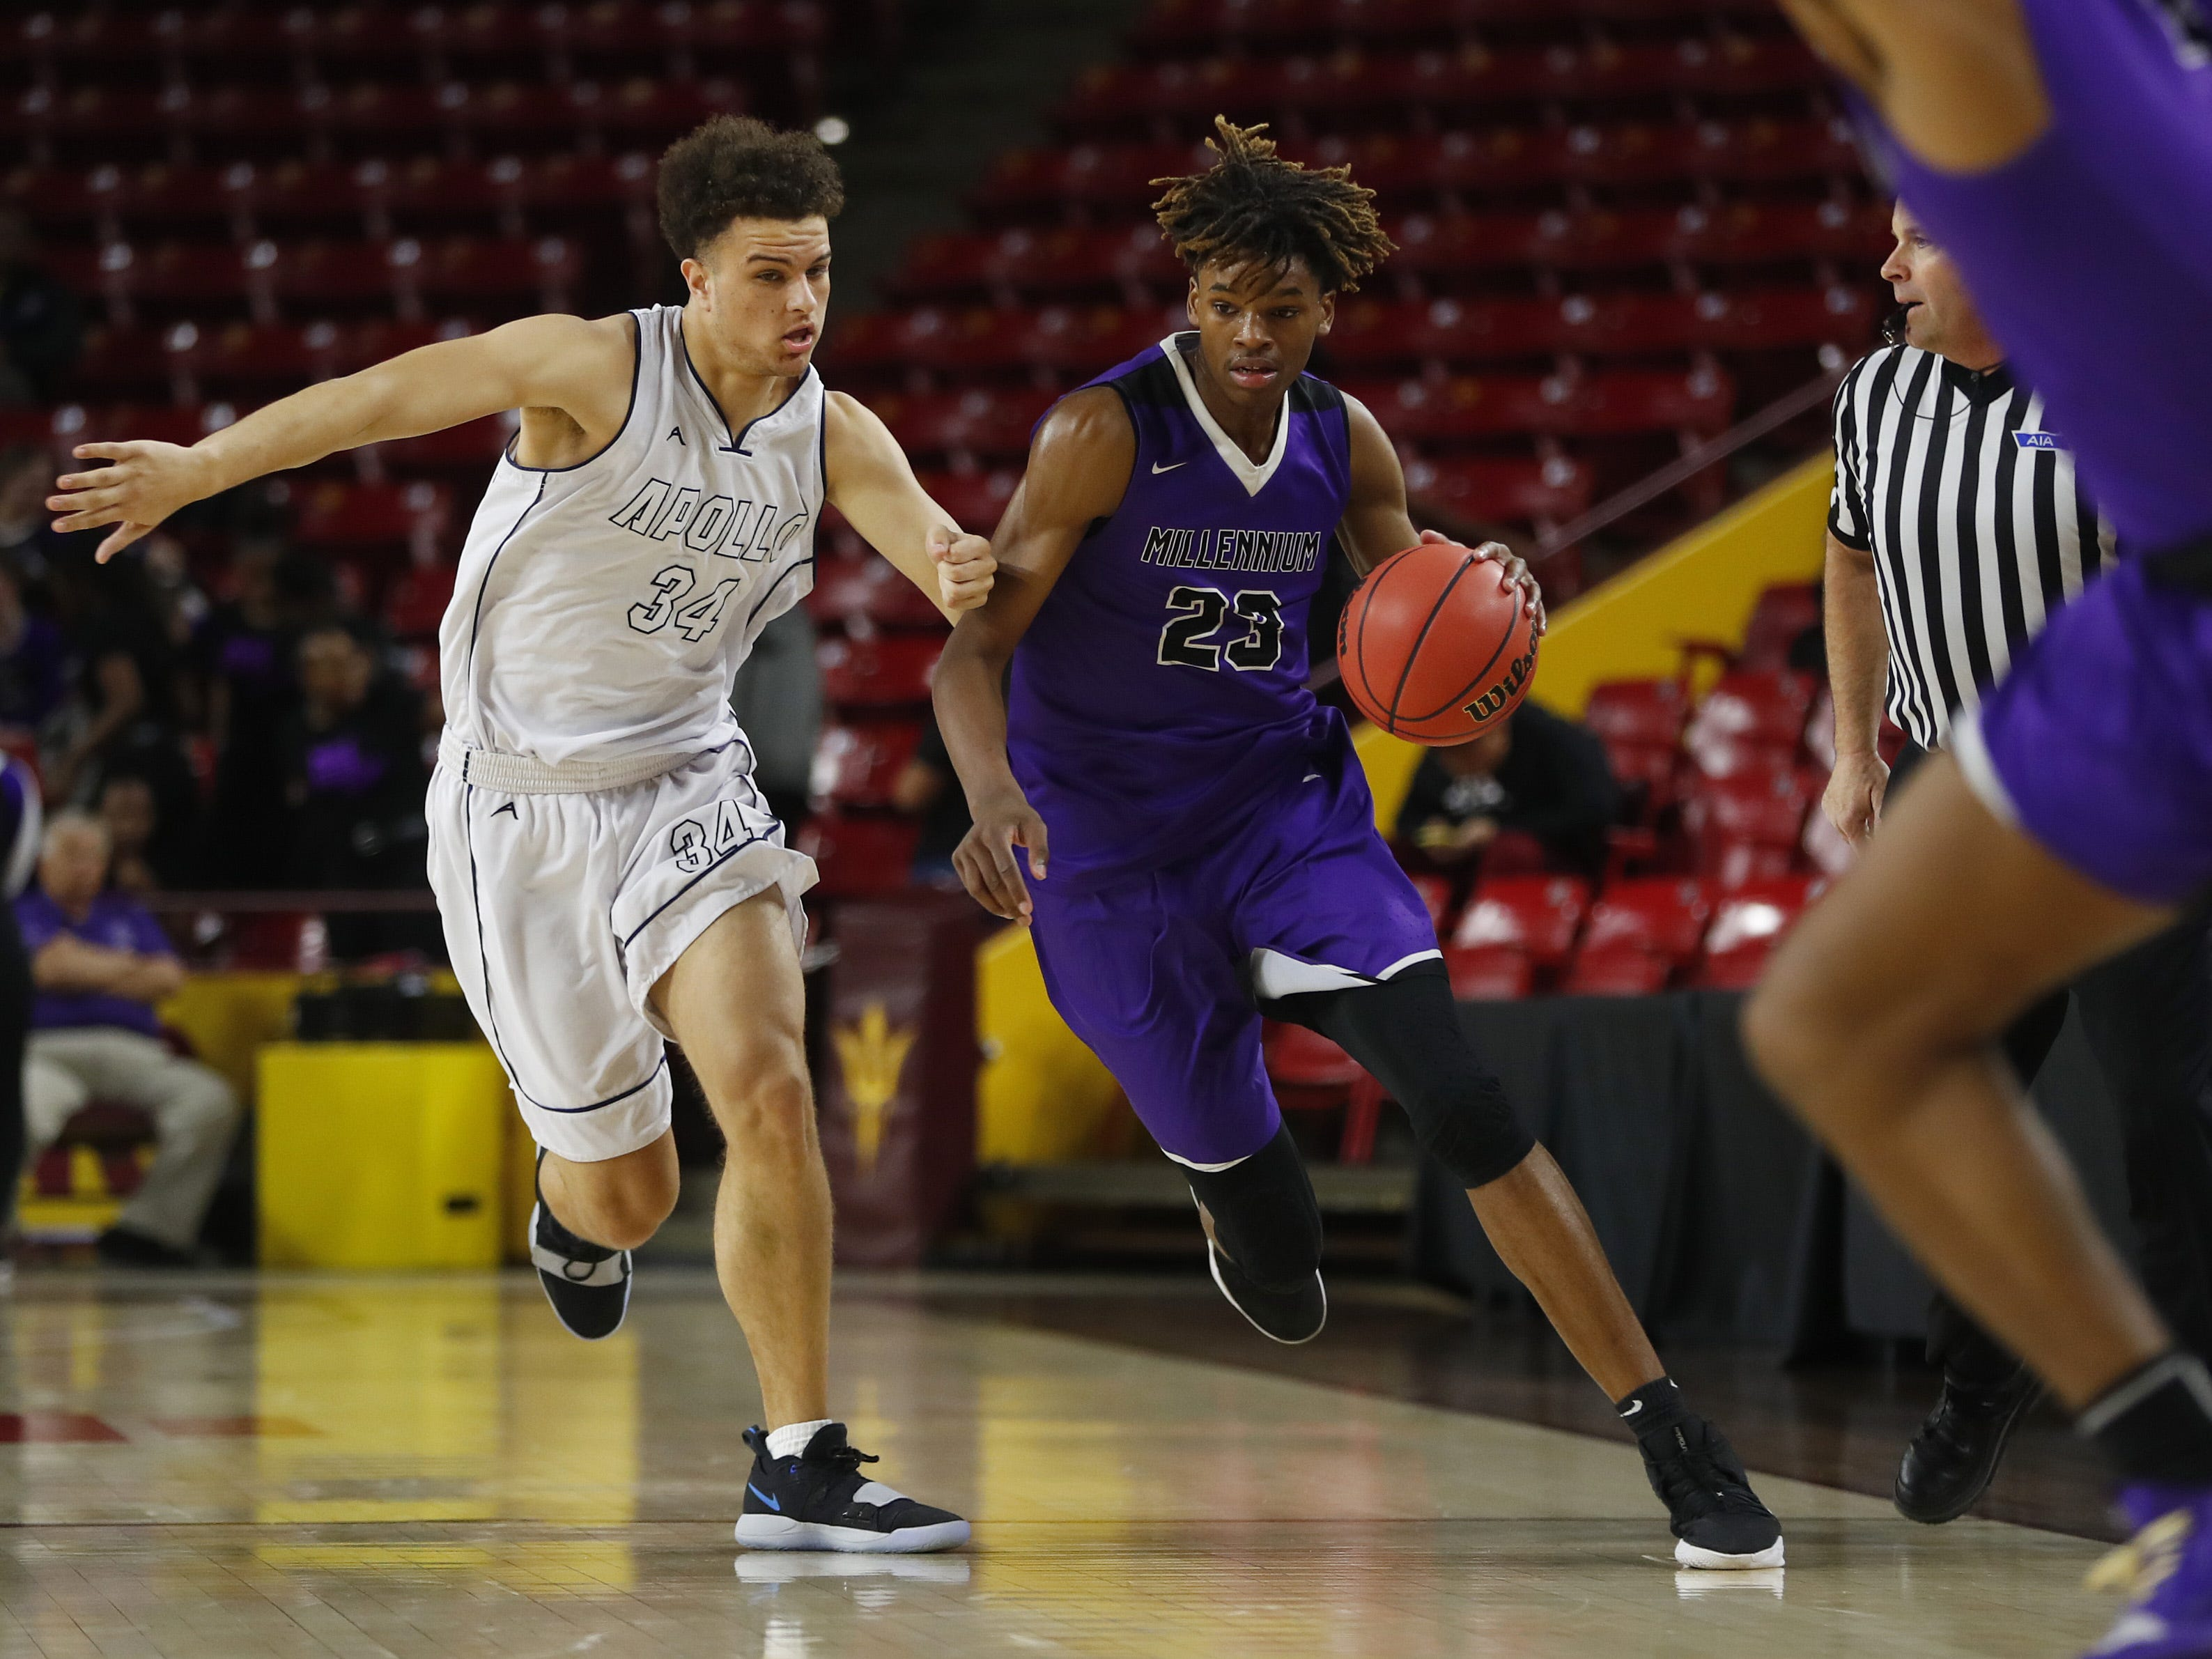 Millennium's DaRon Holmes (23) dribbles against Apollo's Demetrius Edwards (34) during the 5A boys basketball state semifinal game at Wells Fargo Arena in Tempe, Ariz. on February 18, 2019.